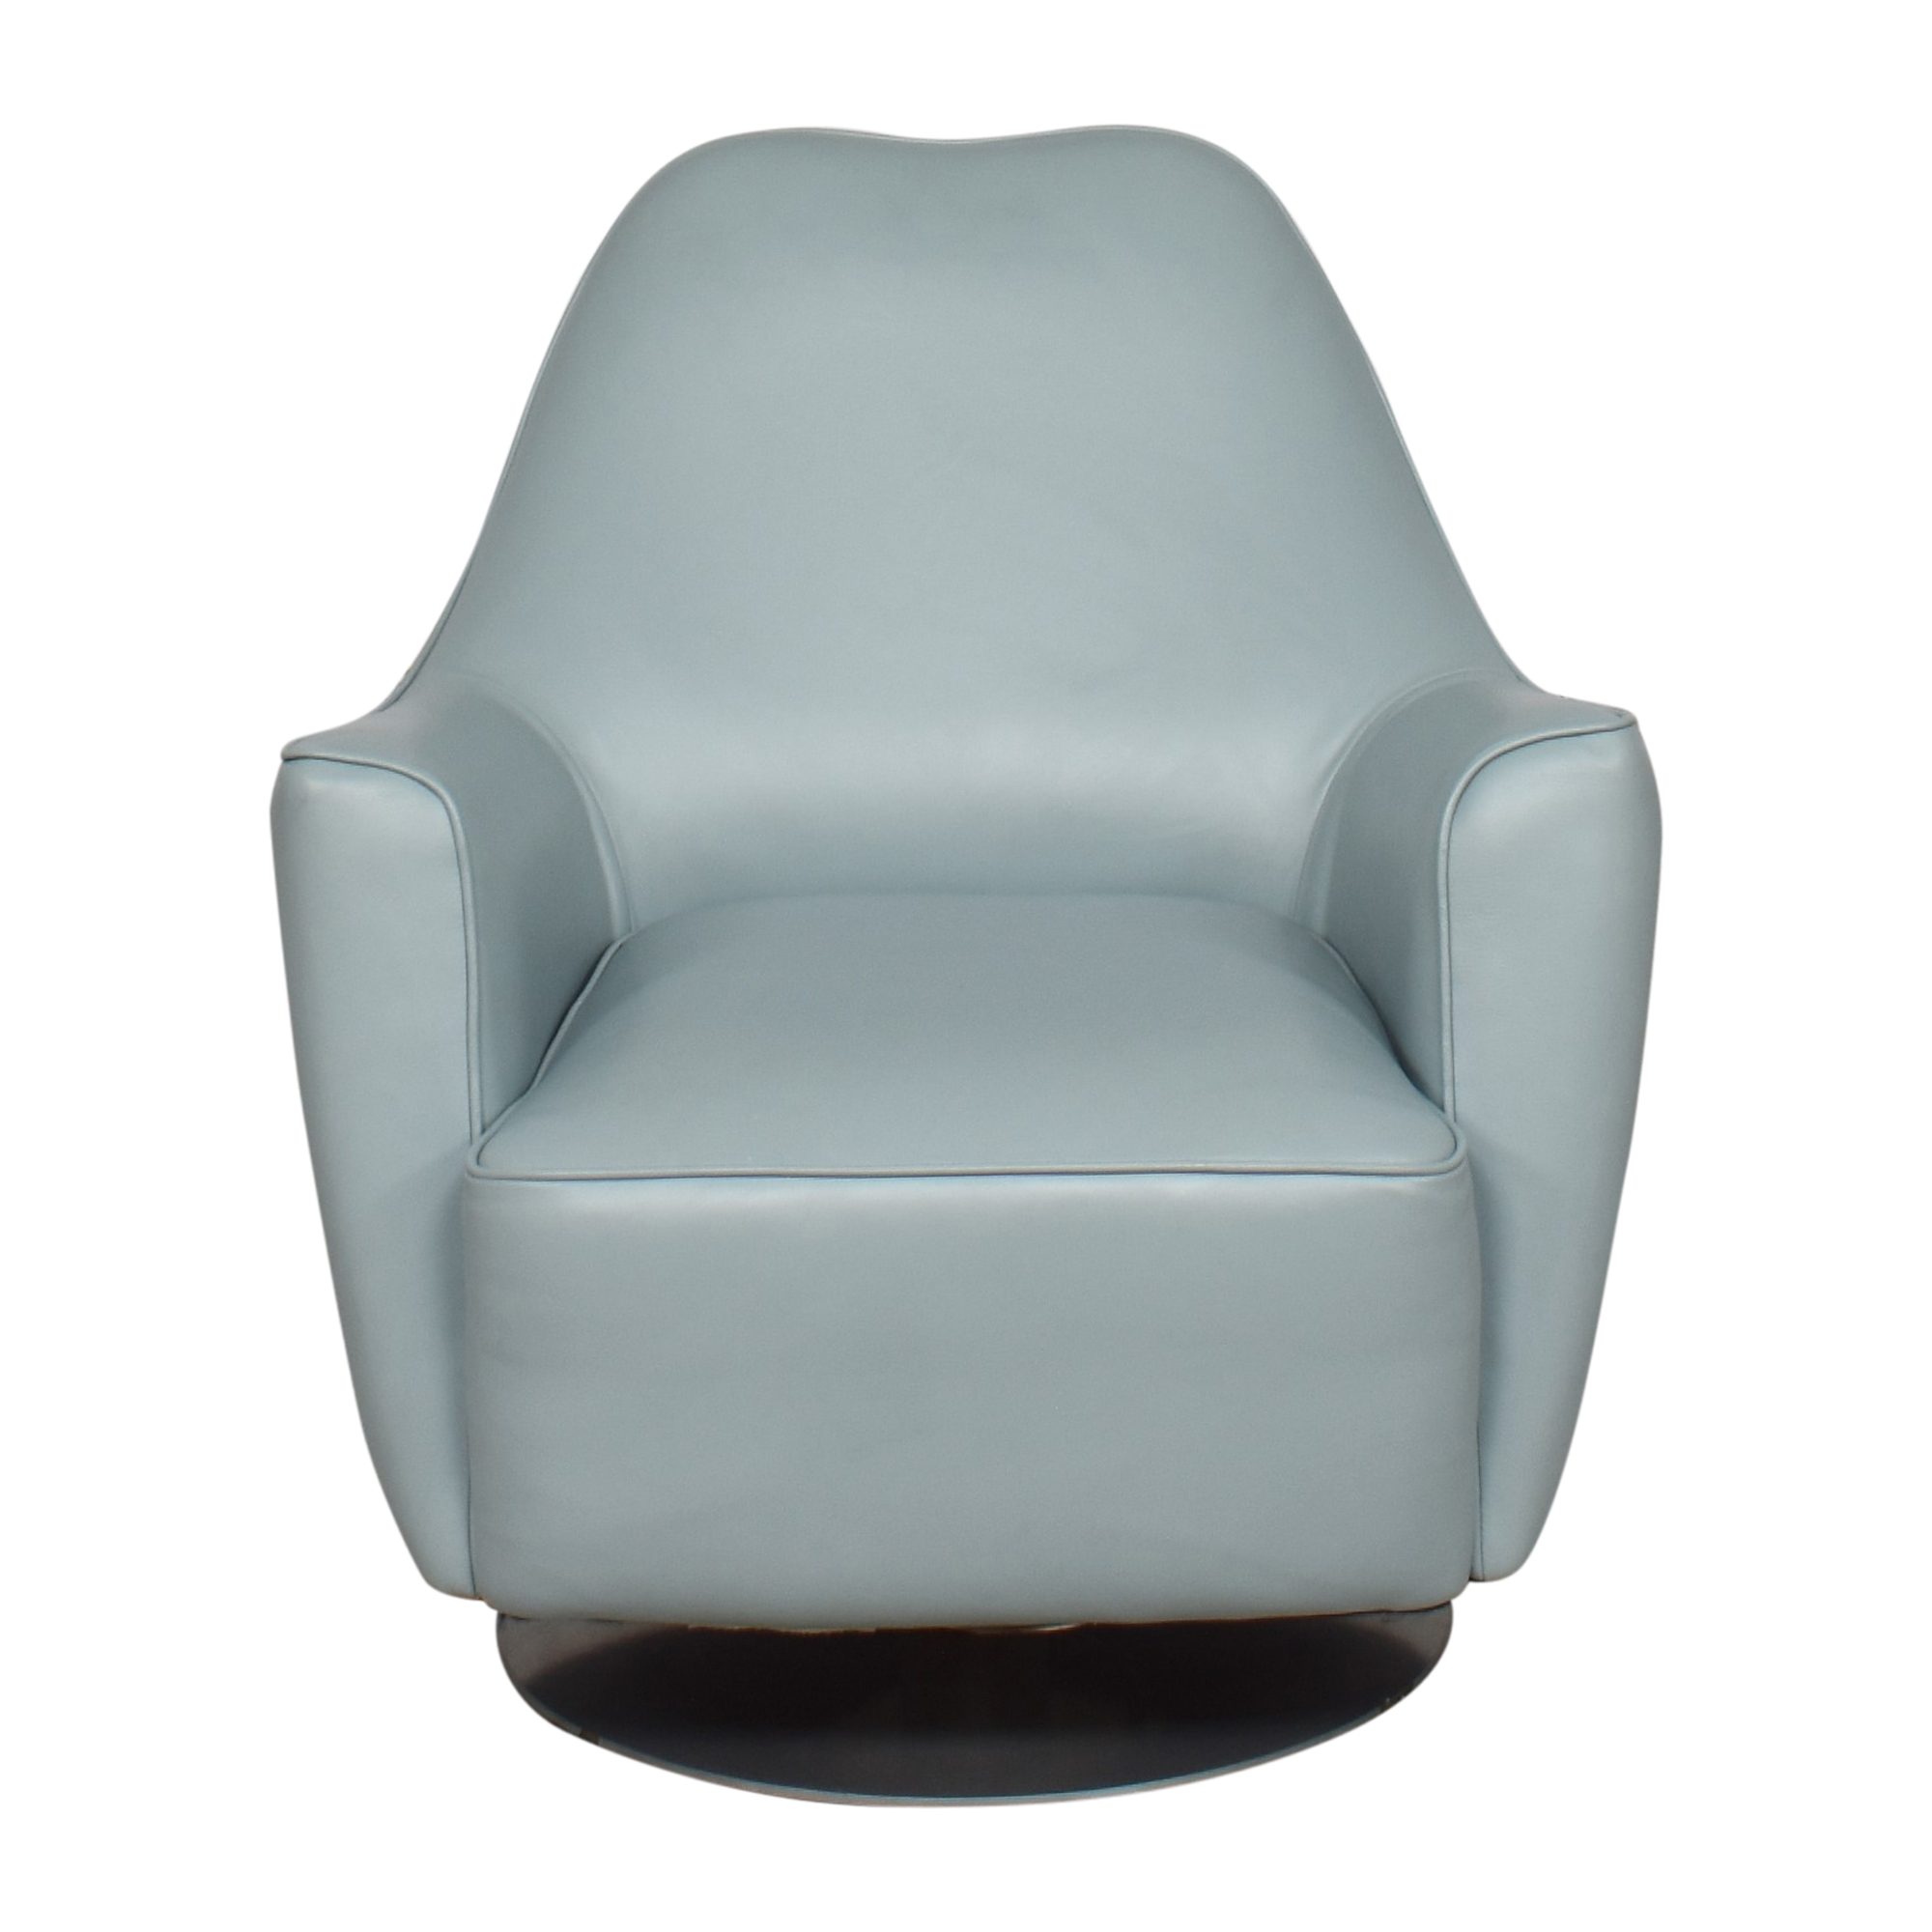 Room & Board Room & Board Modern Swivel Chair Accent Chairs